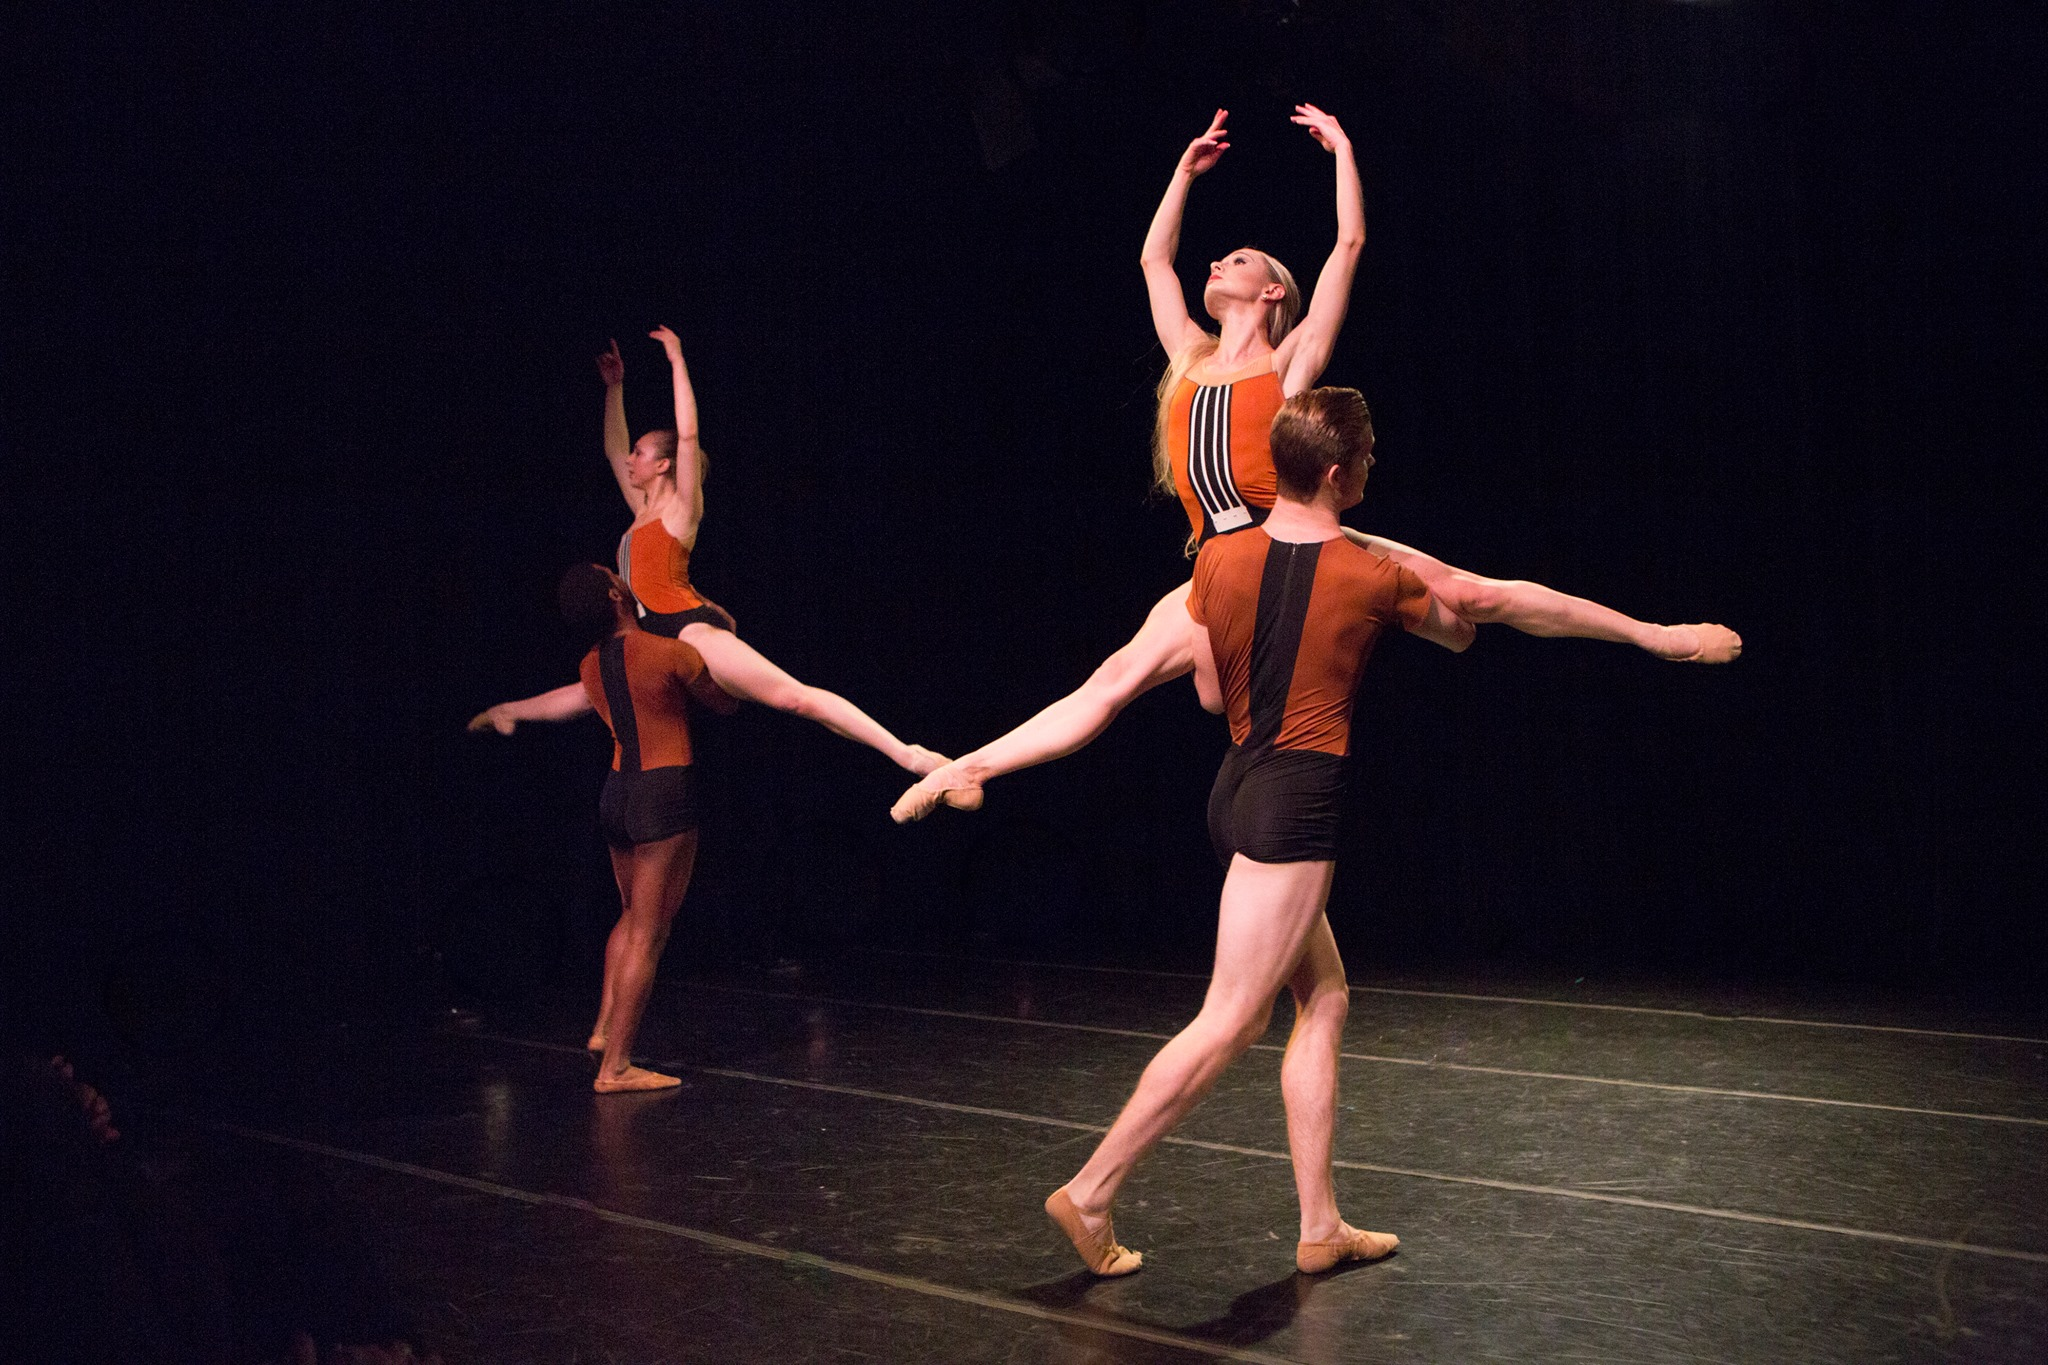 Neville Dance Theatre - Performing as a guest artist in Neville Dance Theater's production of 'Exposed.'